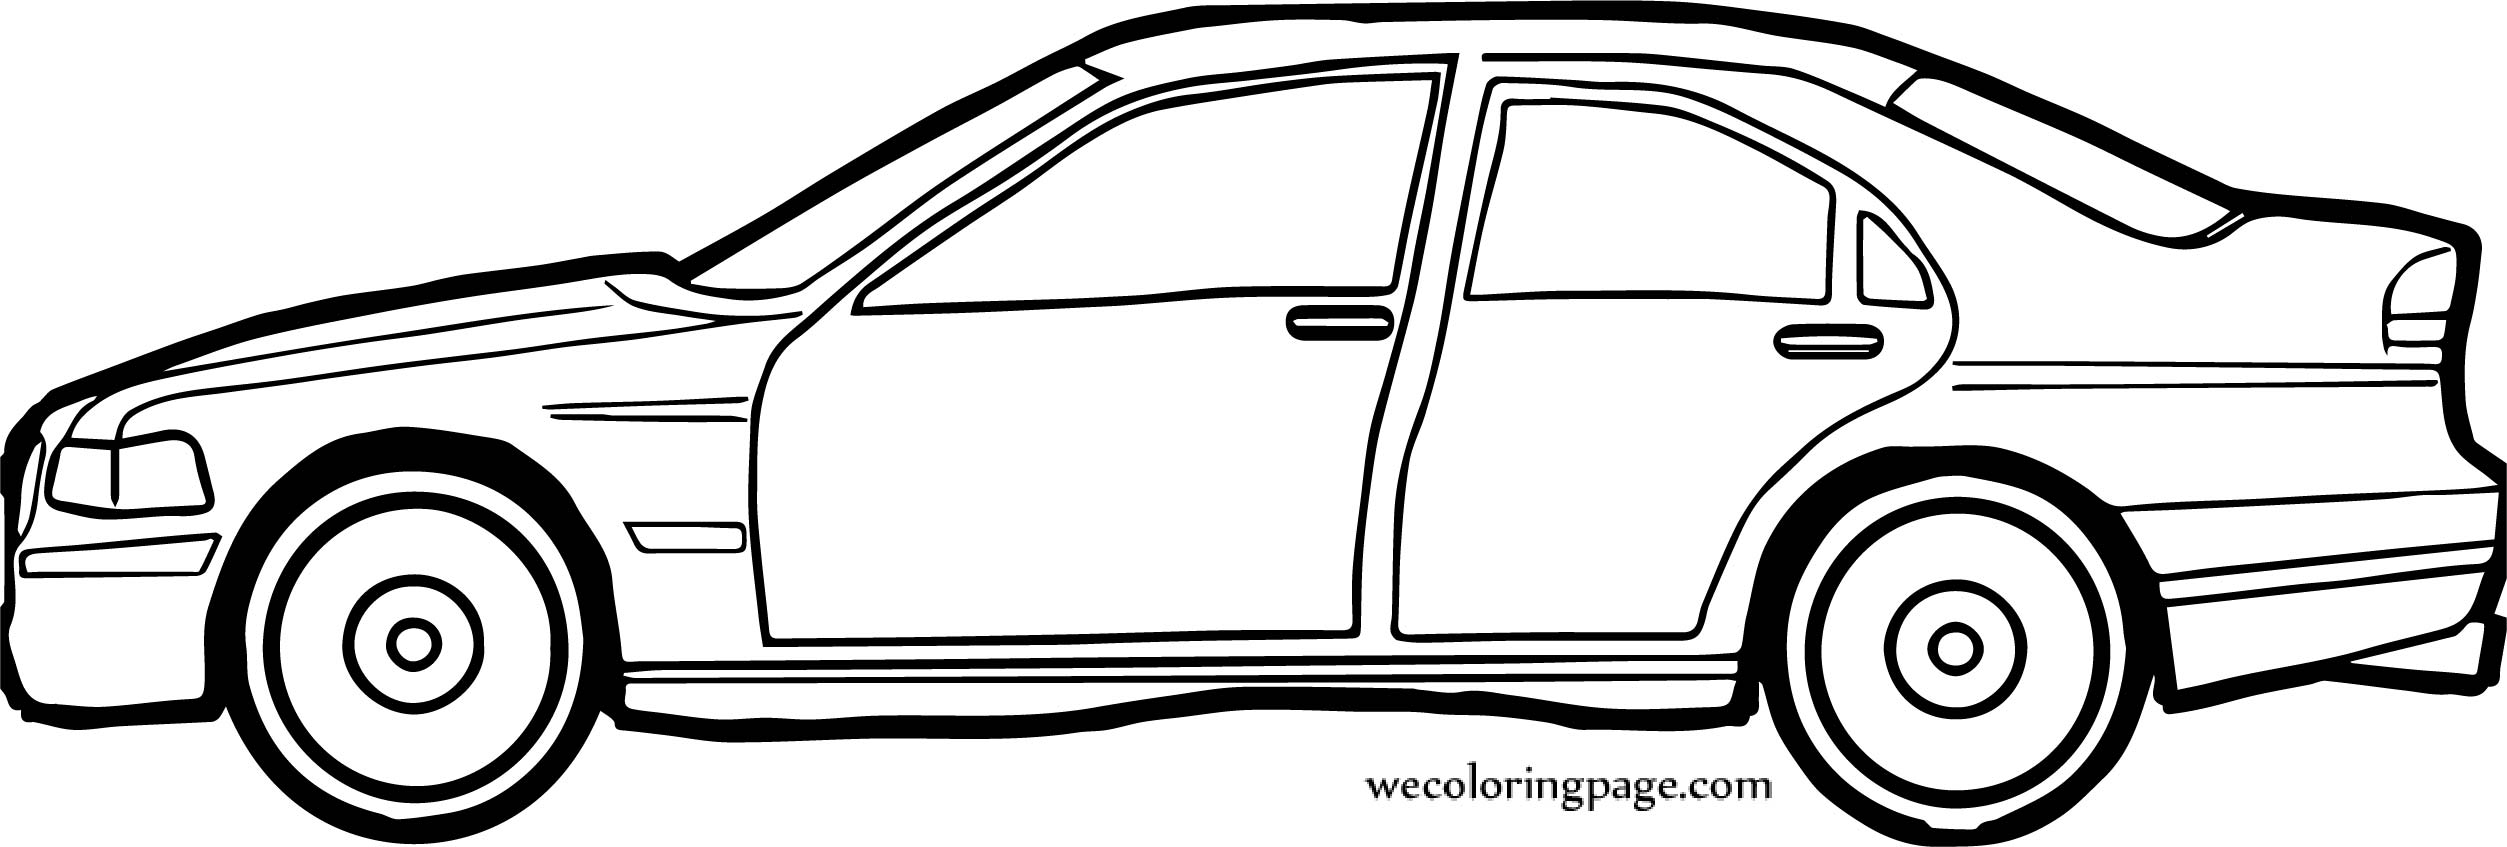 Car Wecoloringpage Coloring Page 107